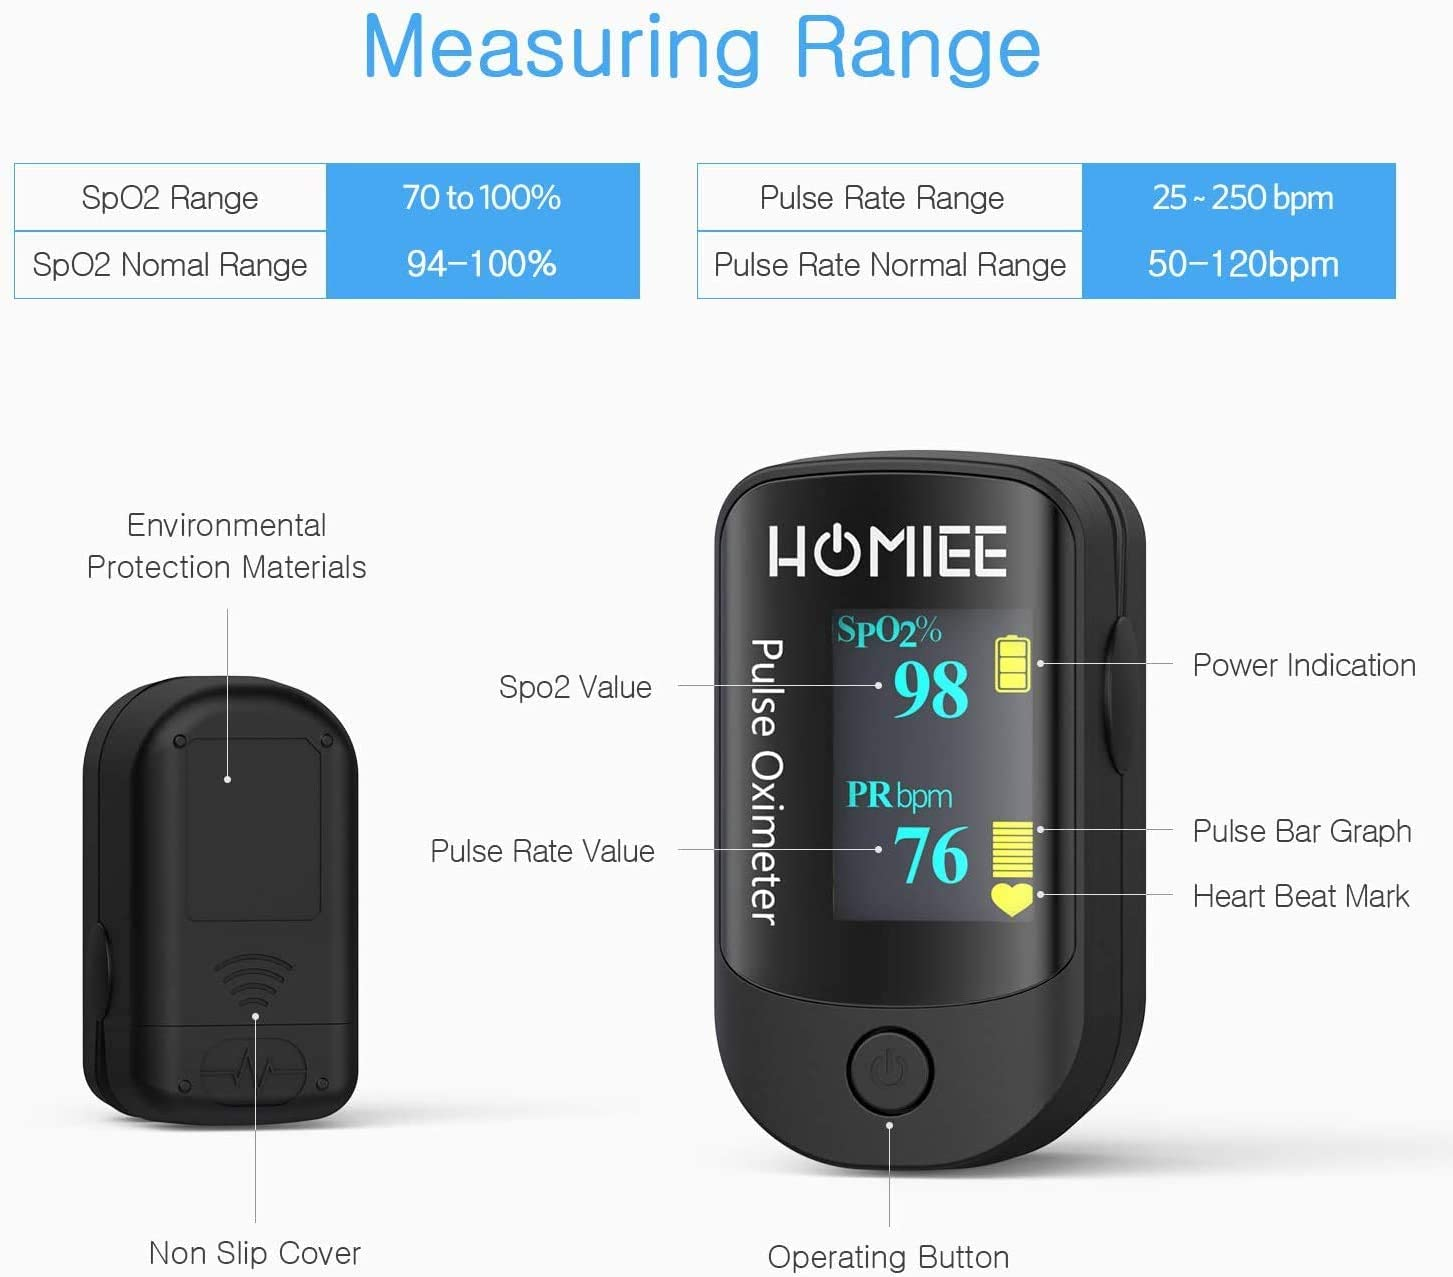 Carry Case Black-03 HOMIEE Premium Health Recorder Batteries and Lanyard Included